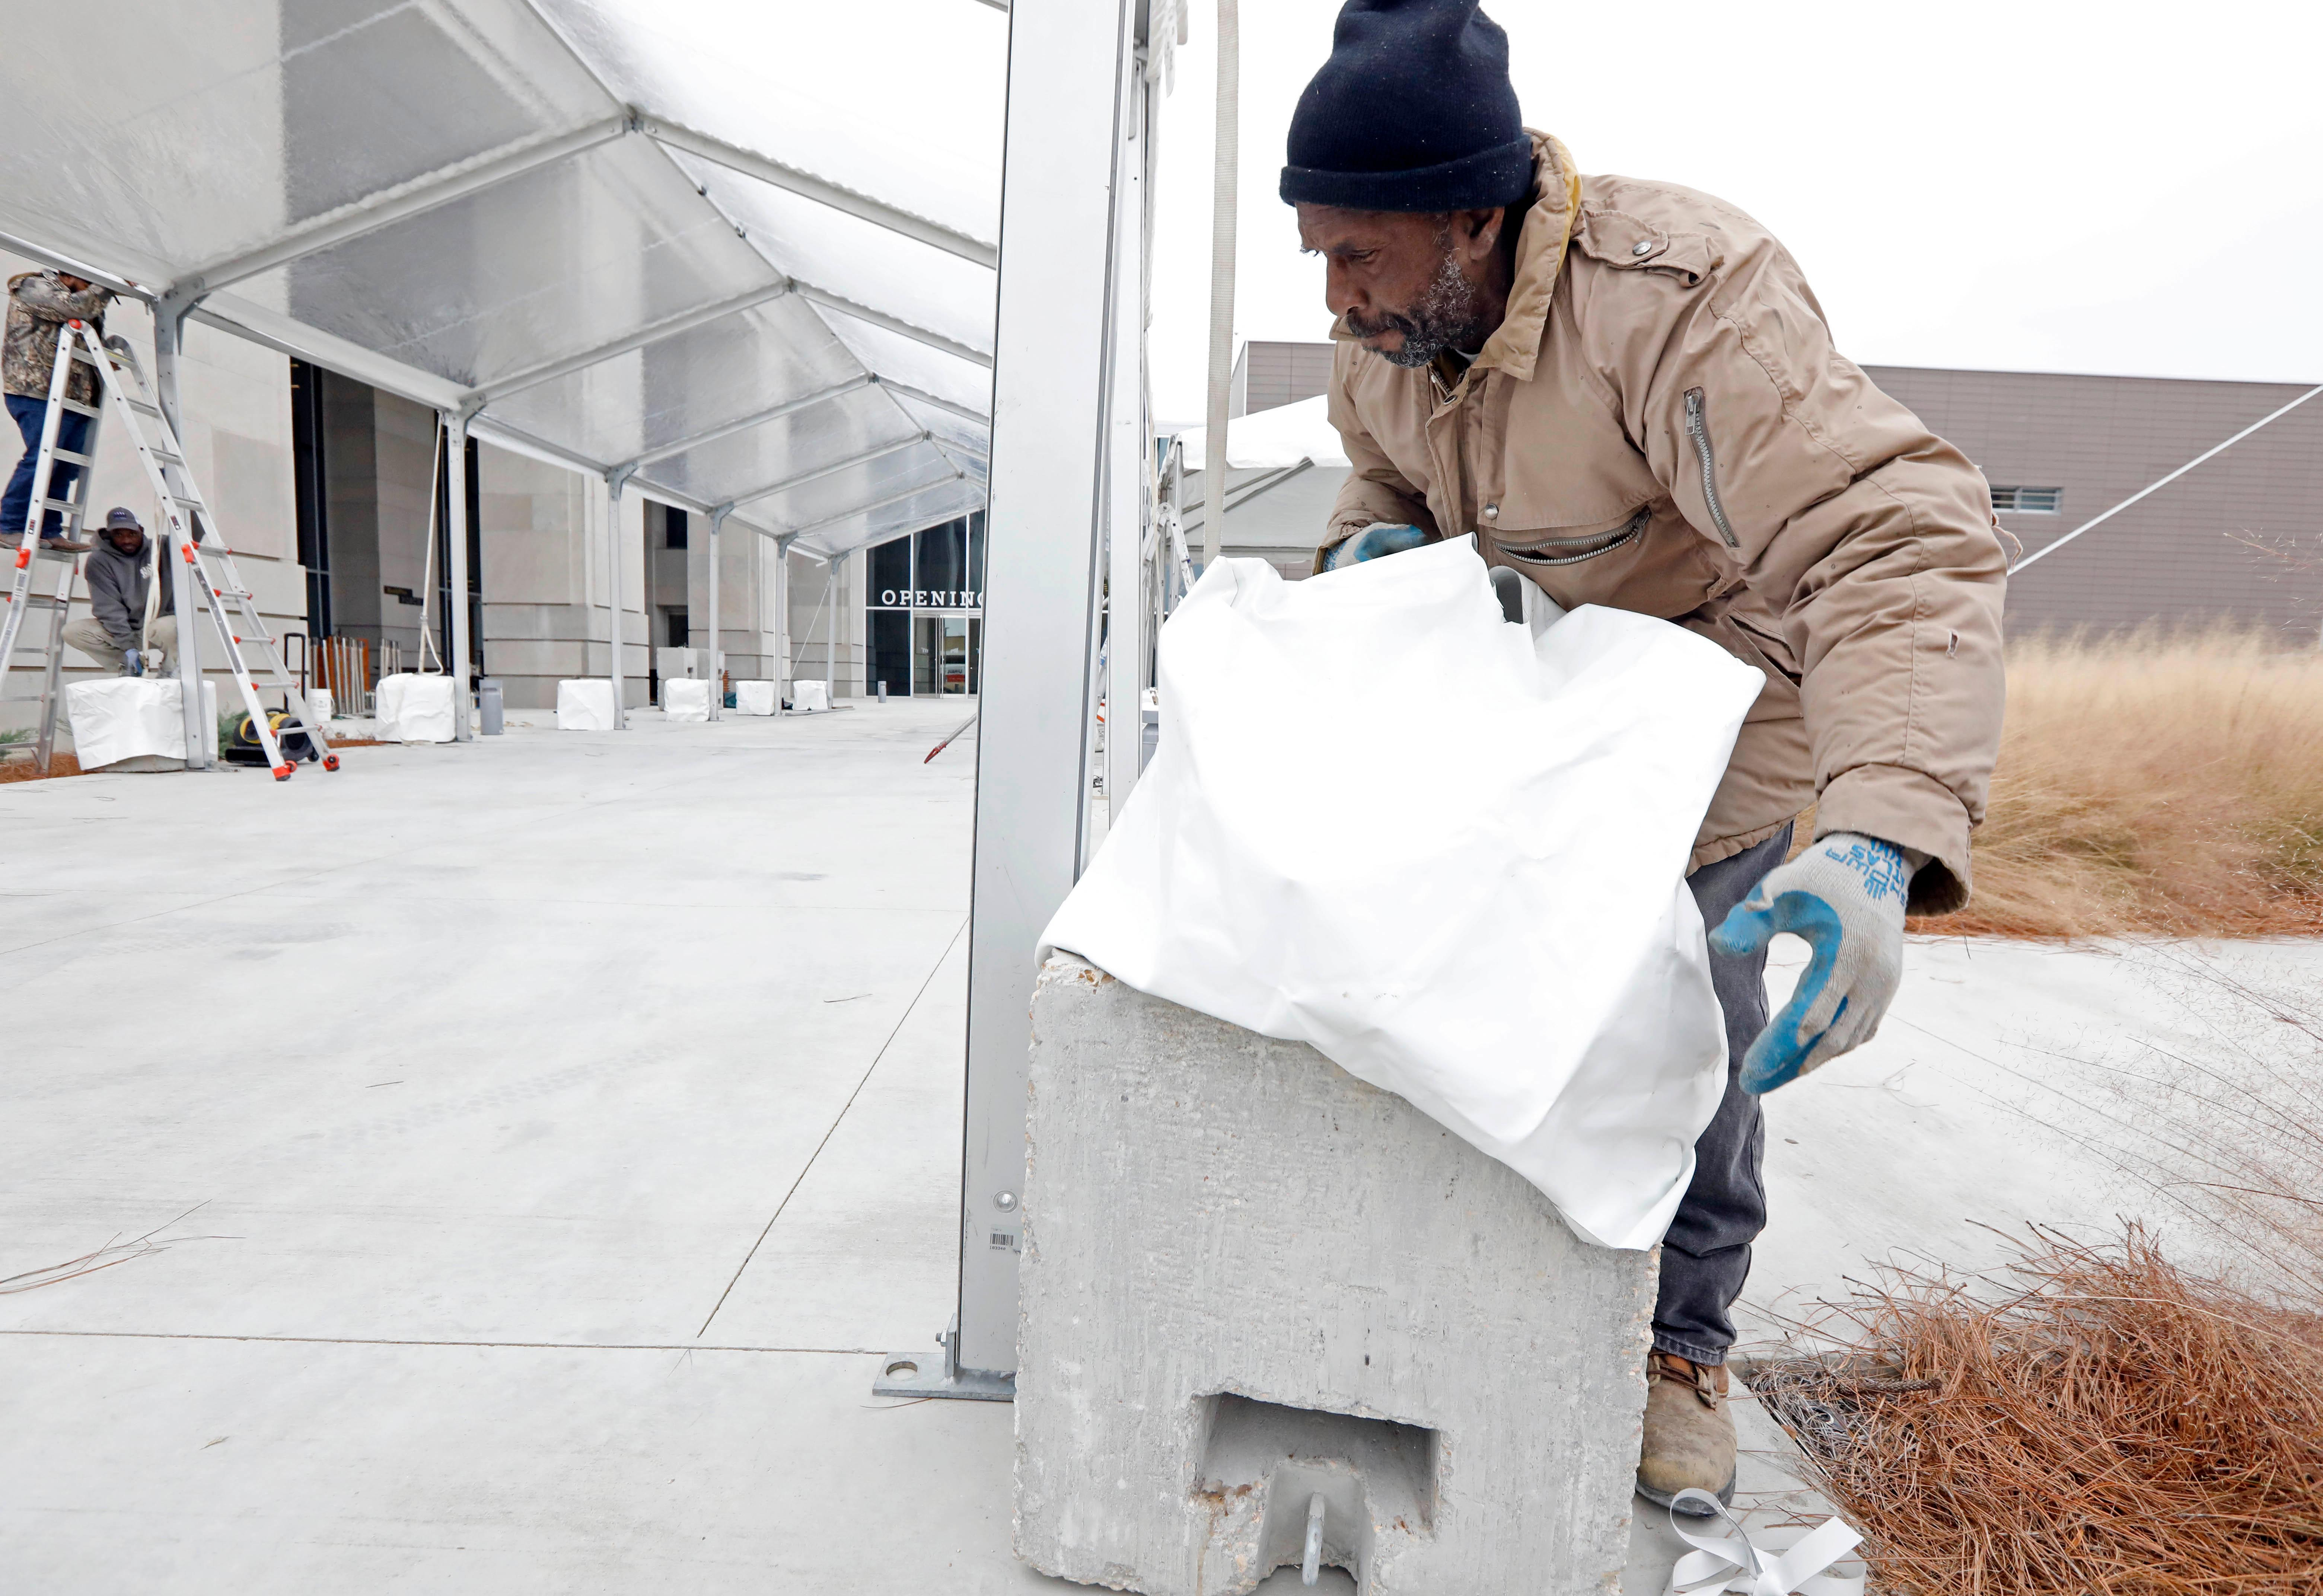 Robert Daugherty, wrestles with a concrete mooring cover as he tries not to step into the muhly grass along the temporary covered walk way to the state's two newest museums, the Museum of Mississippi History and the Mississippi Civil Rights Museum, Thursday, Dec. 7, 2017 in Jackson, Miss. A temporary performance stage, a covered walk way, 2,500 seats are in the process of being built or arranged in the small plaza that rests in front of the two museums. The long-planned Saturday ceremony will mark Mississippi's bicentennial of admission into the union, however the appearance of President Donald Trump at the ceremony has drawn the ire of U.S. Reps. John Lewis, D-Ga., and Bennie Thompson, D-Miss., who announced Thursday they won't attend the opening of Mississippi civil rights and history museums. What was intended as a moment of racial unity and atonement in the state with the largest share of African-Americans is descending into racial and partisan strife after Republican Mississippi Gov. Phil Bryant invited fellow Republican Trump to attend. (AP Photo/Rogelio V. Solis)